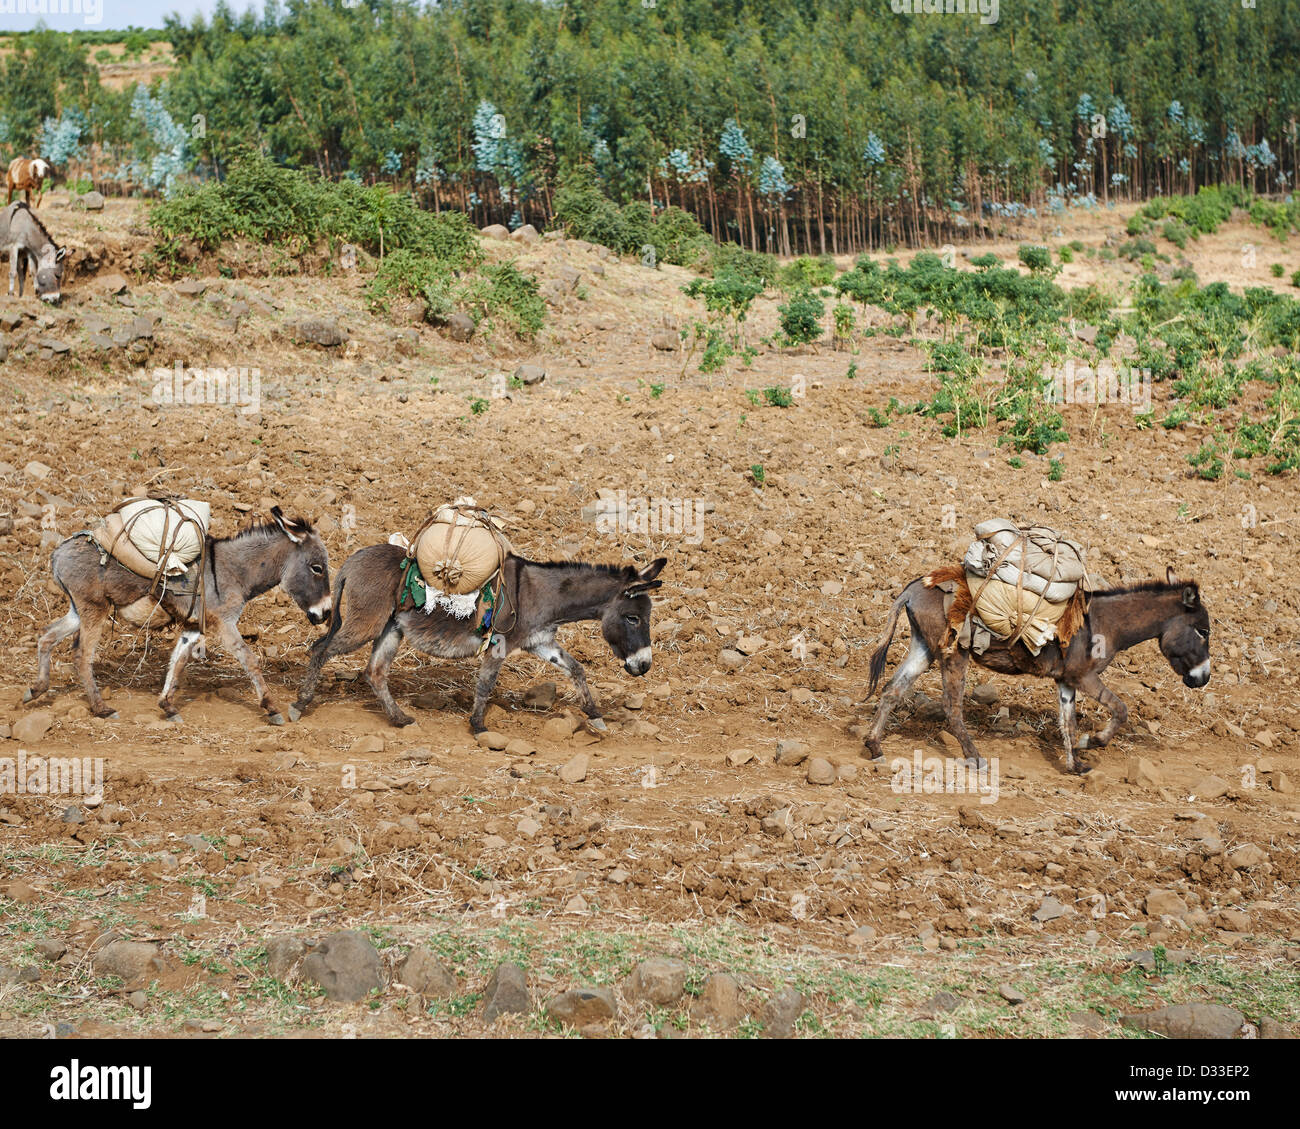 Donkeys carry rut sacks filled with groceries and supplies on a dirt path - Stock Image